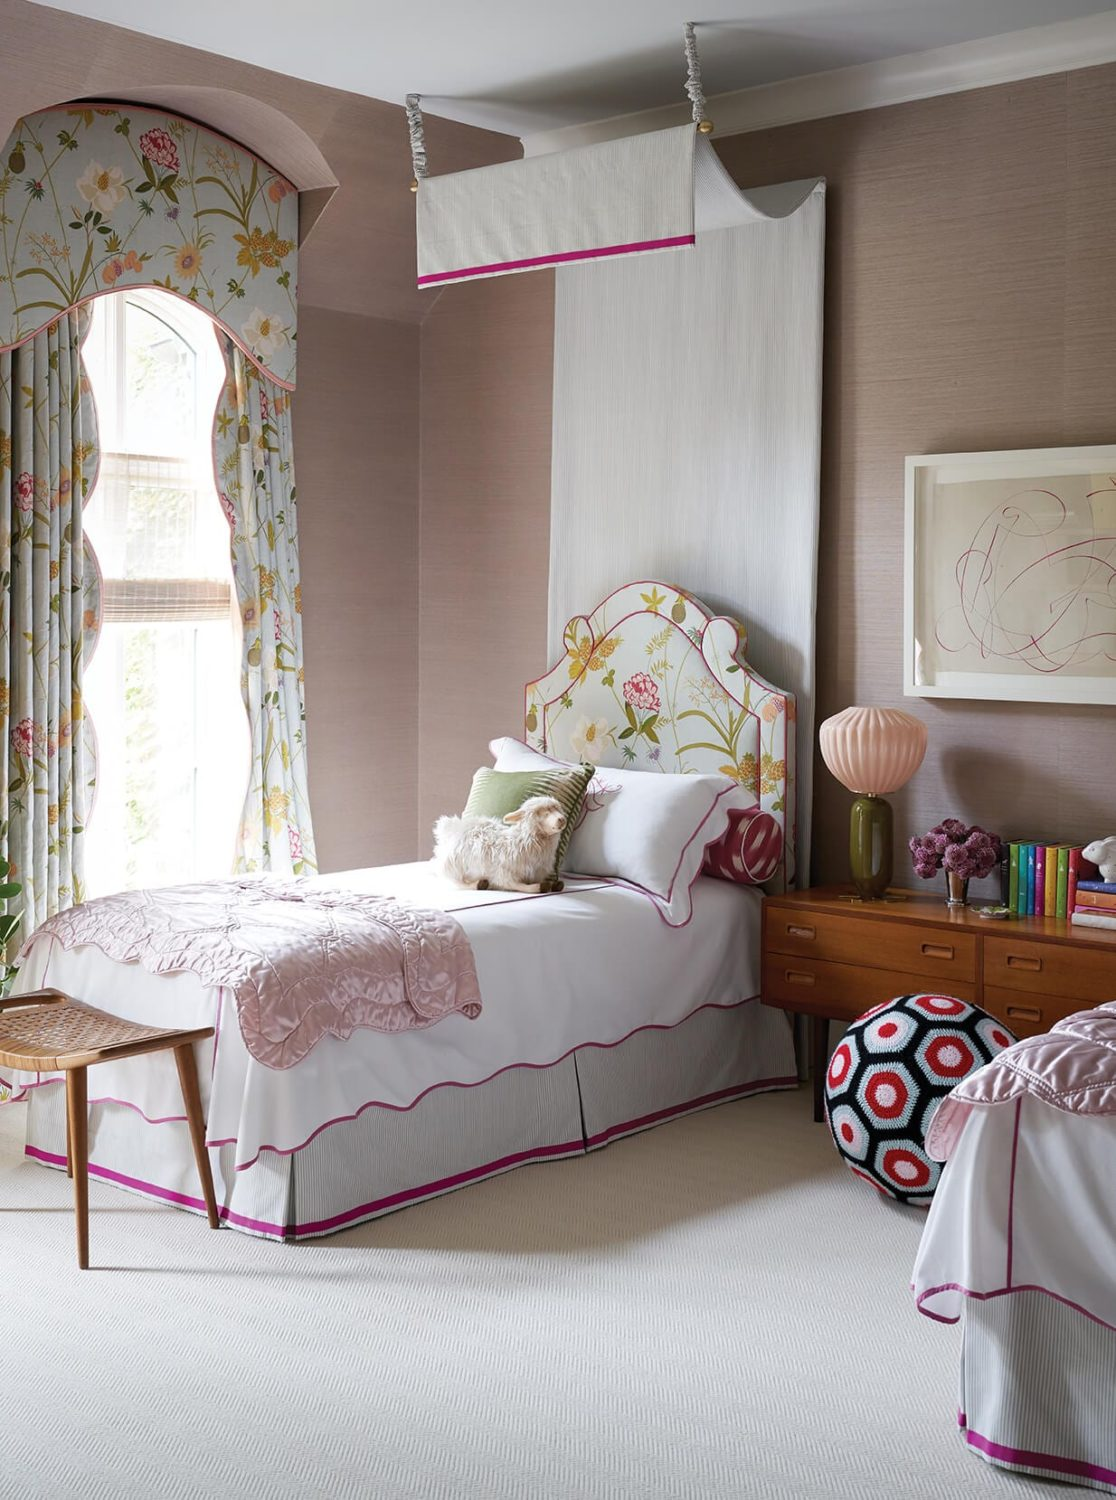 How To Properly Make Up A Bed According To 10 Top Designers Schumacher Blog